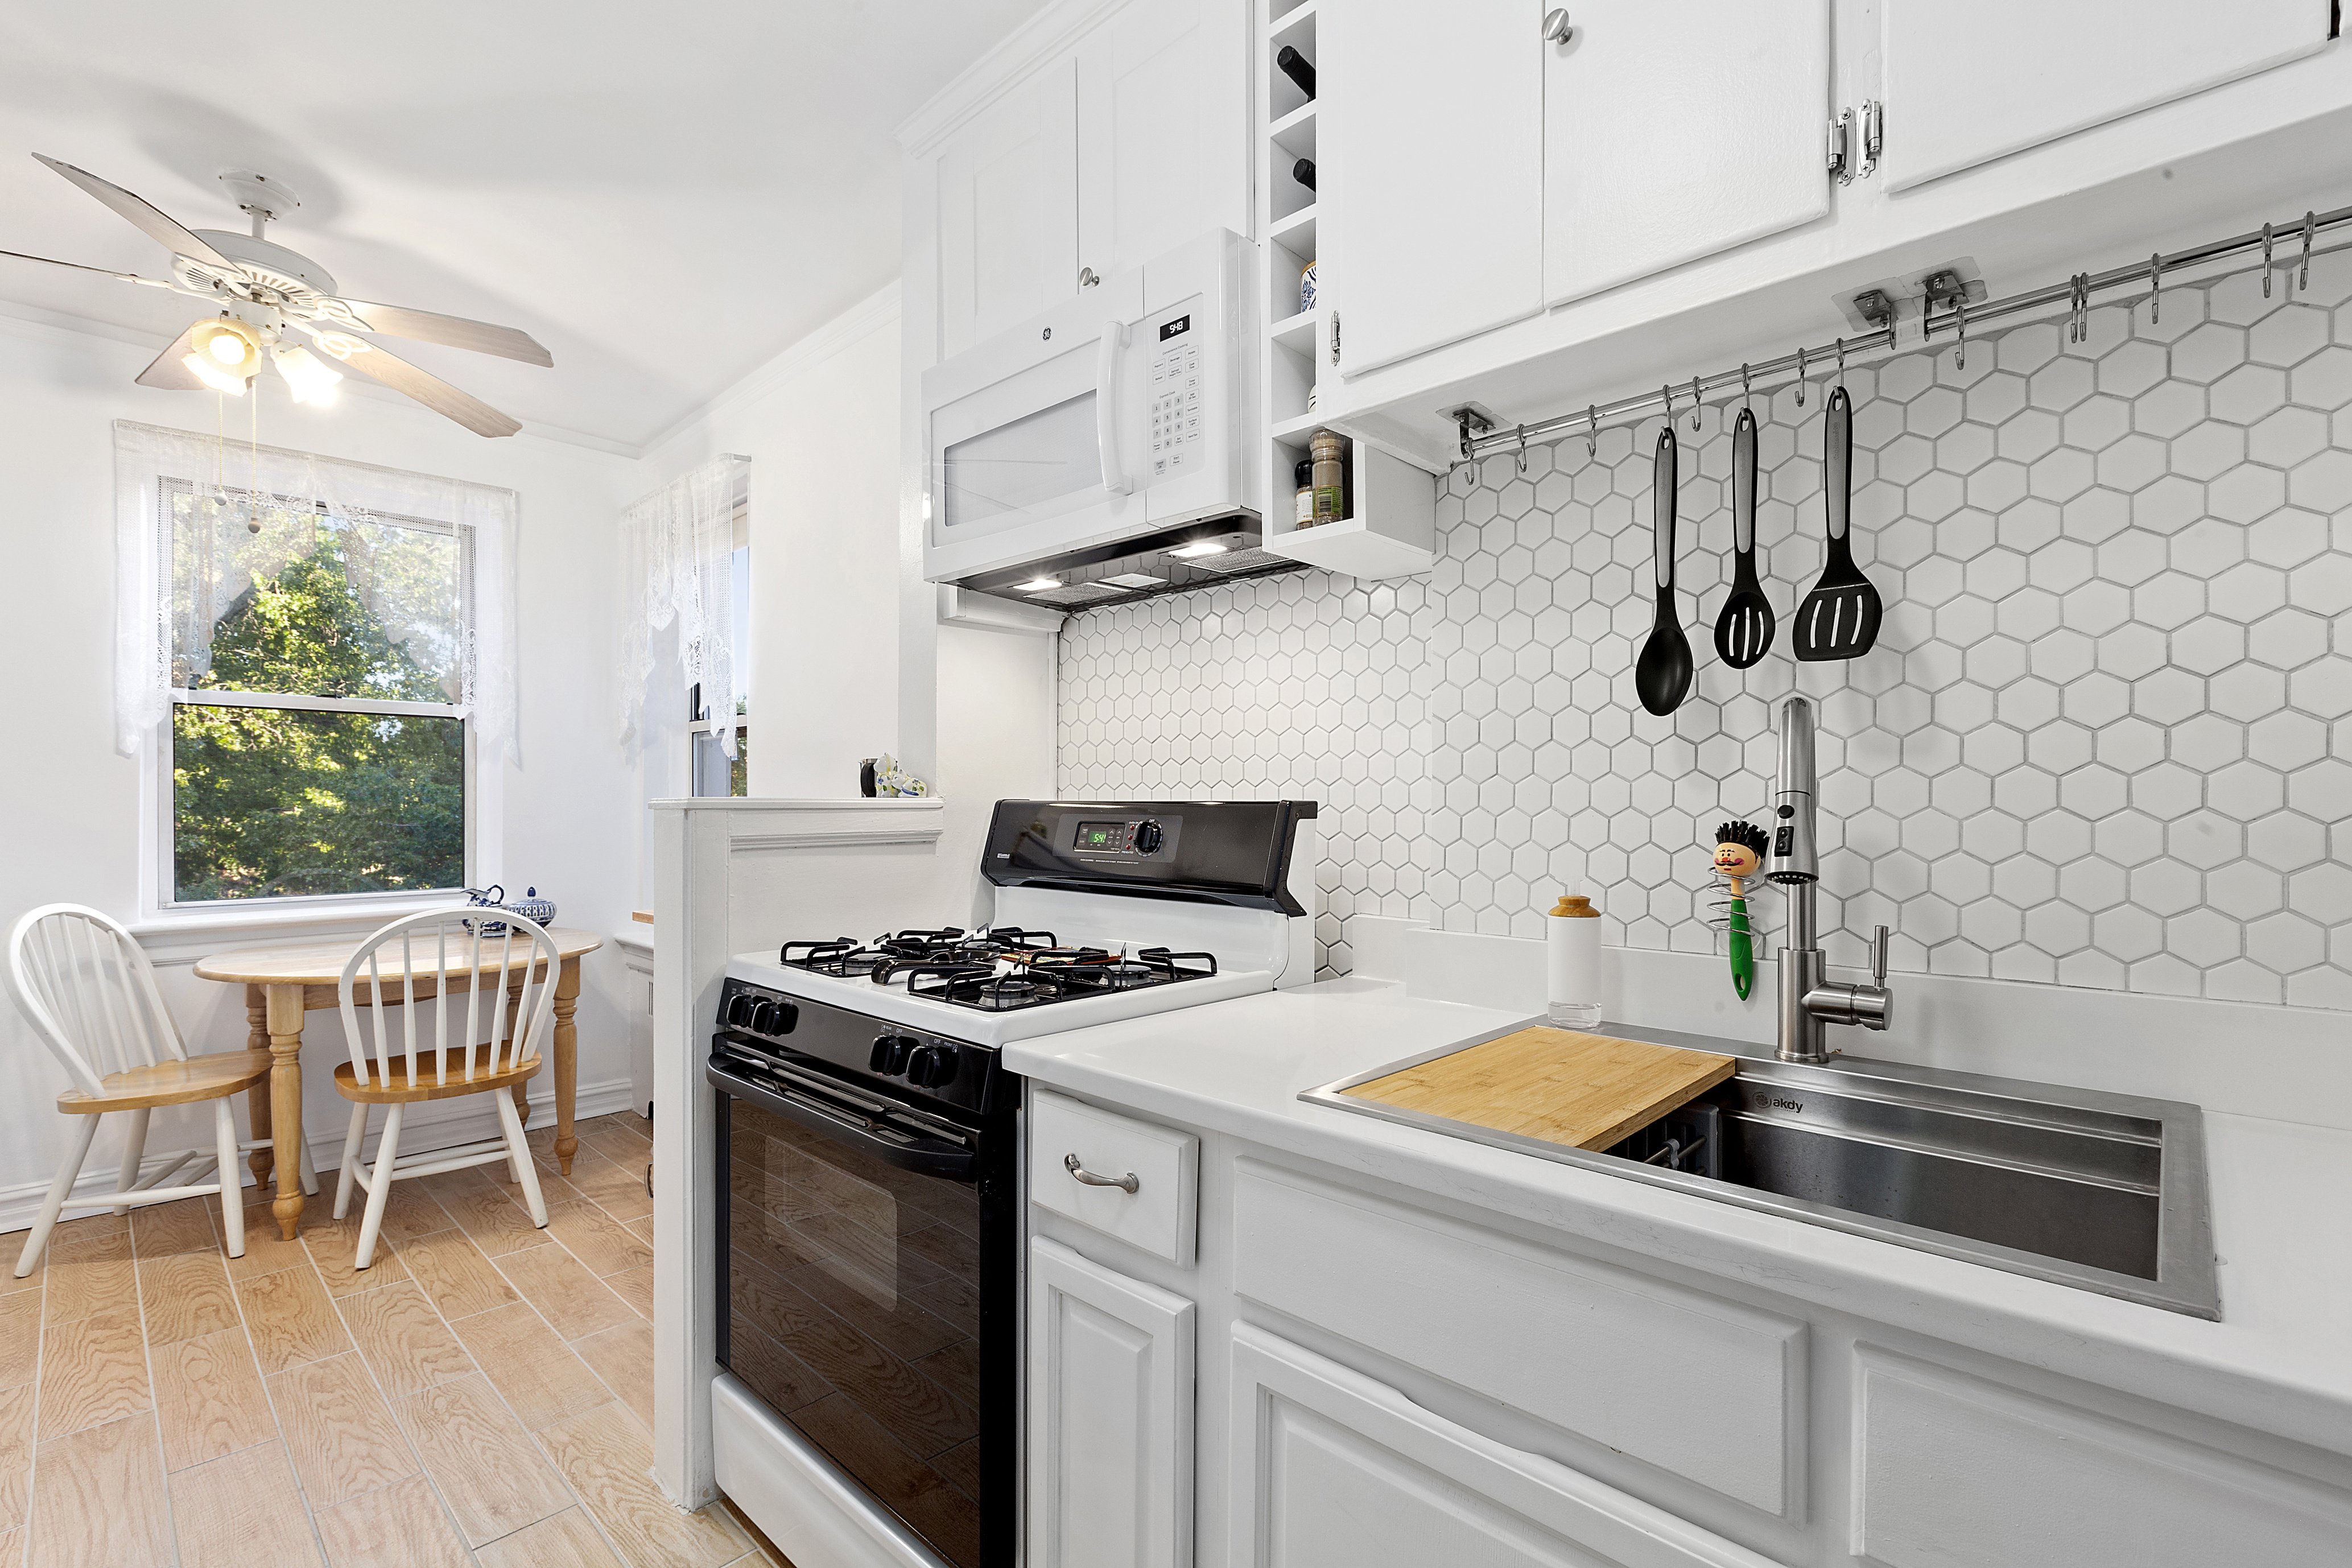 A kitchen with hardwood floors, a small dining table, a window, a ceiling fan, and white cabinetry.